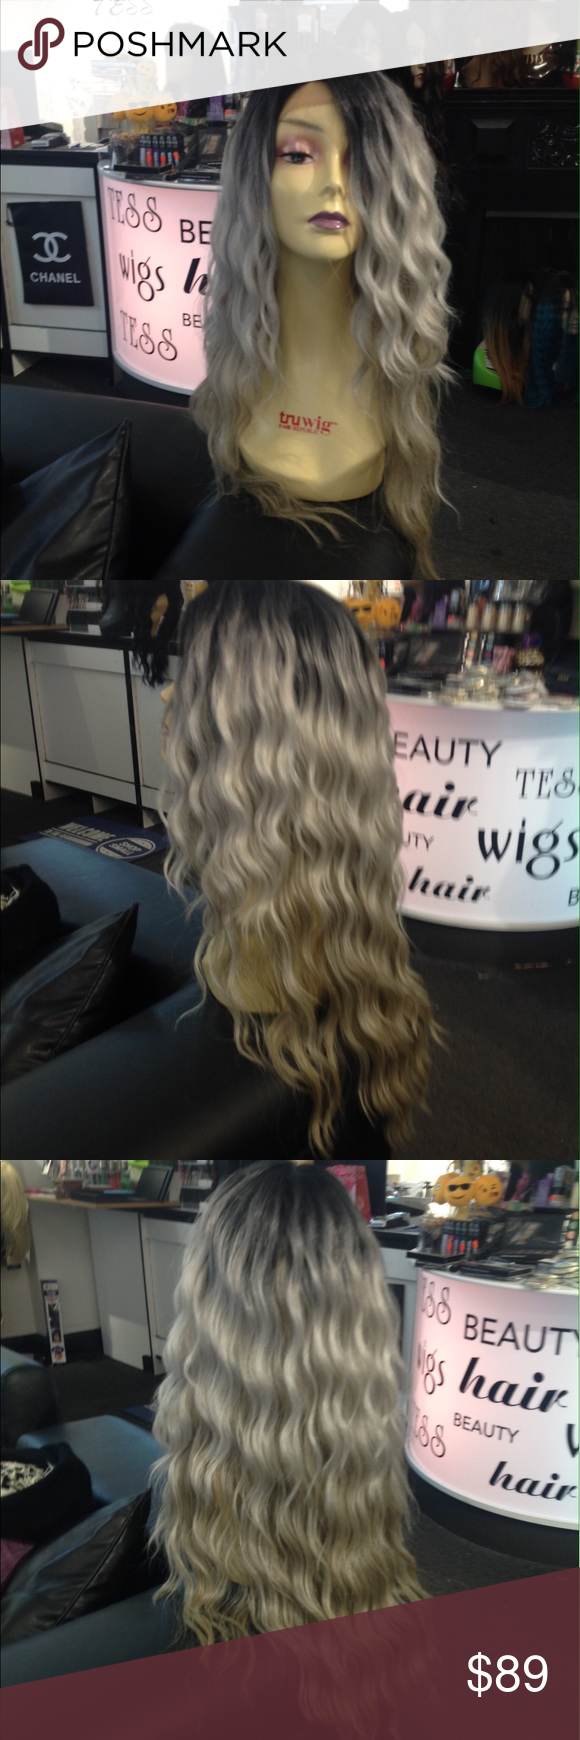 Ombre Black Roots Silver Beach Wave New Long Heat Resistant Adjule Cap Wig Beautiful Waves Super 30 32 Inch Soft Silky Too The